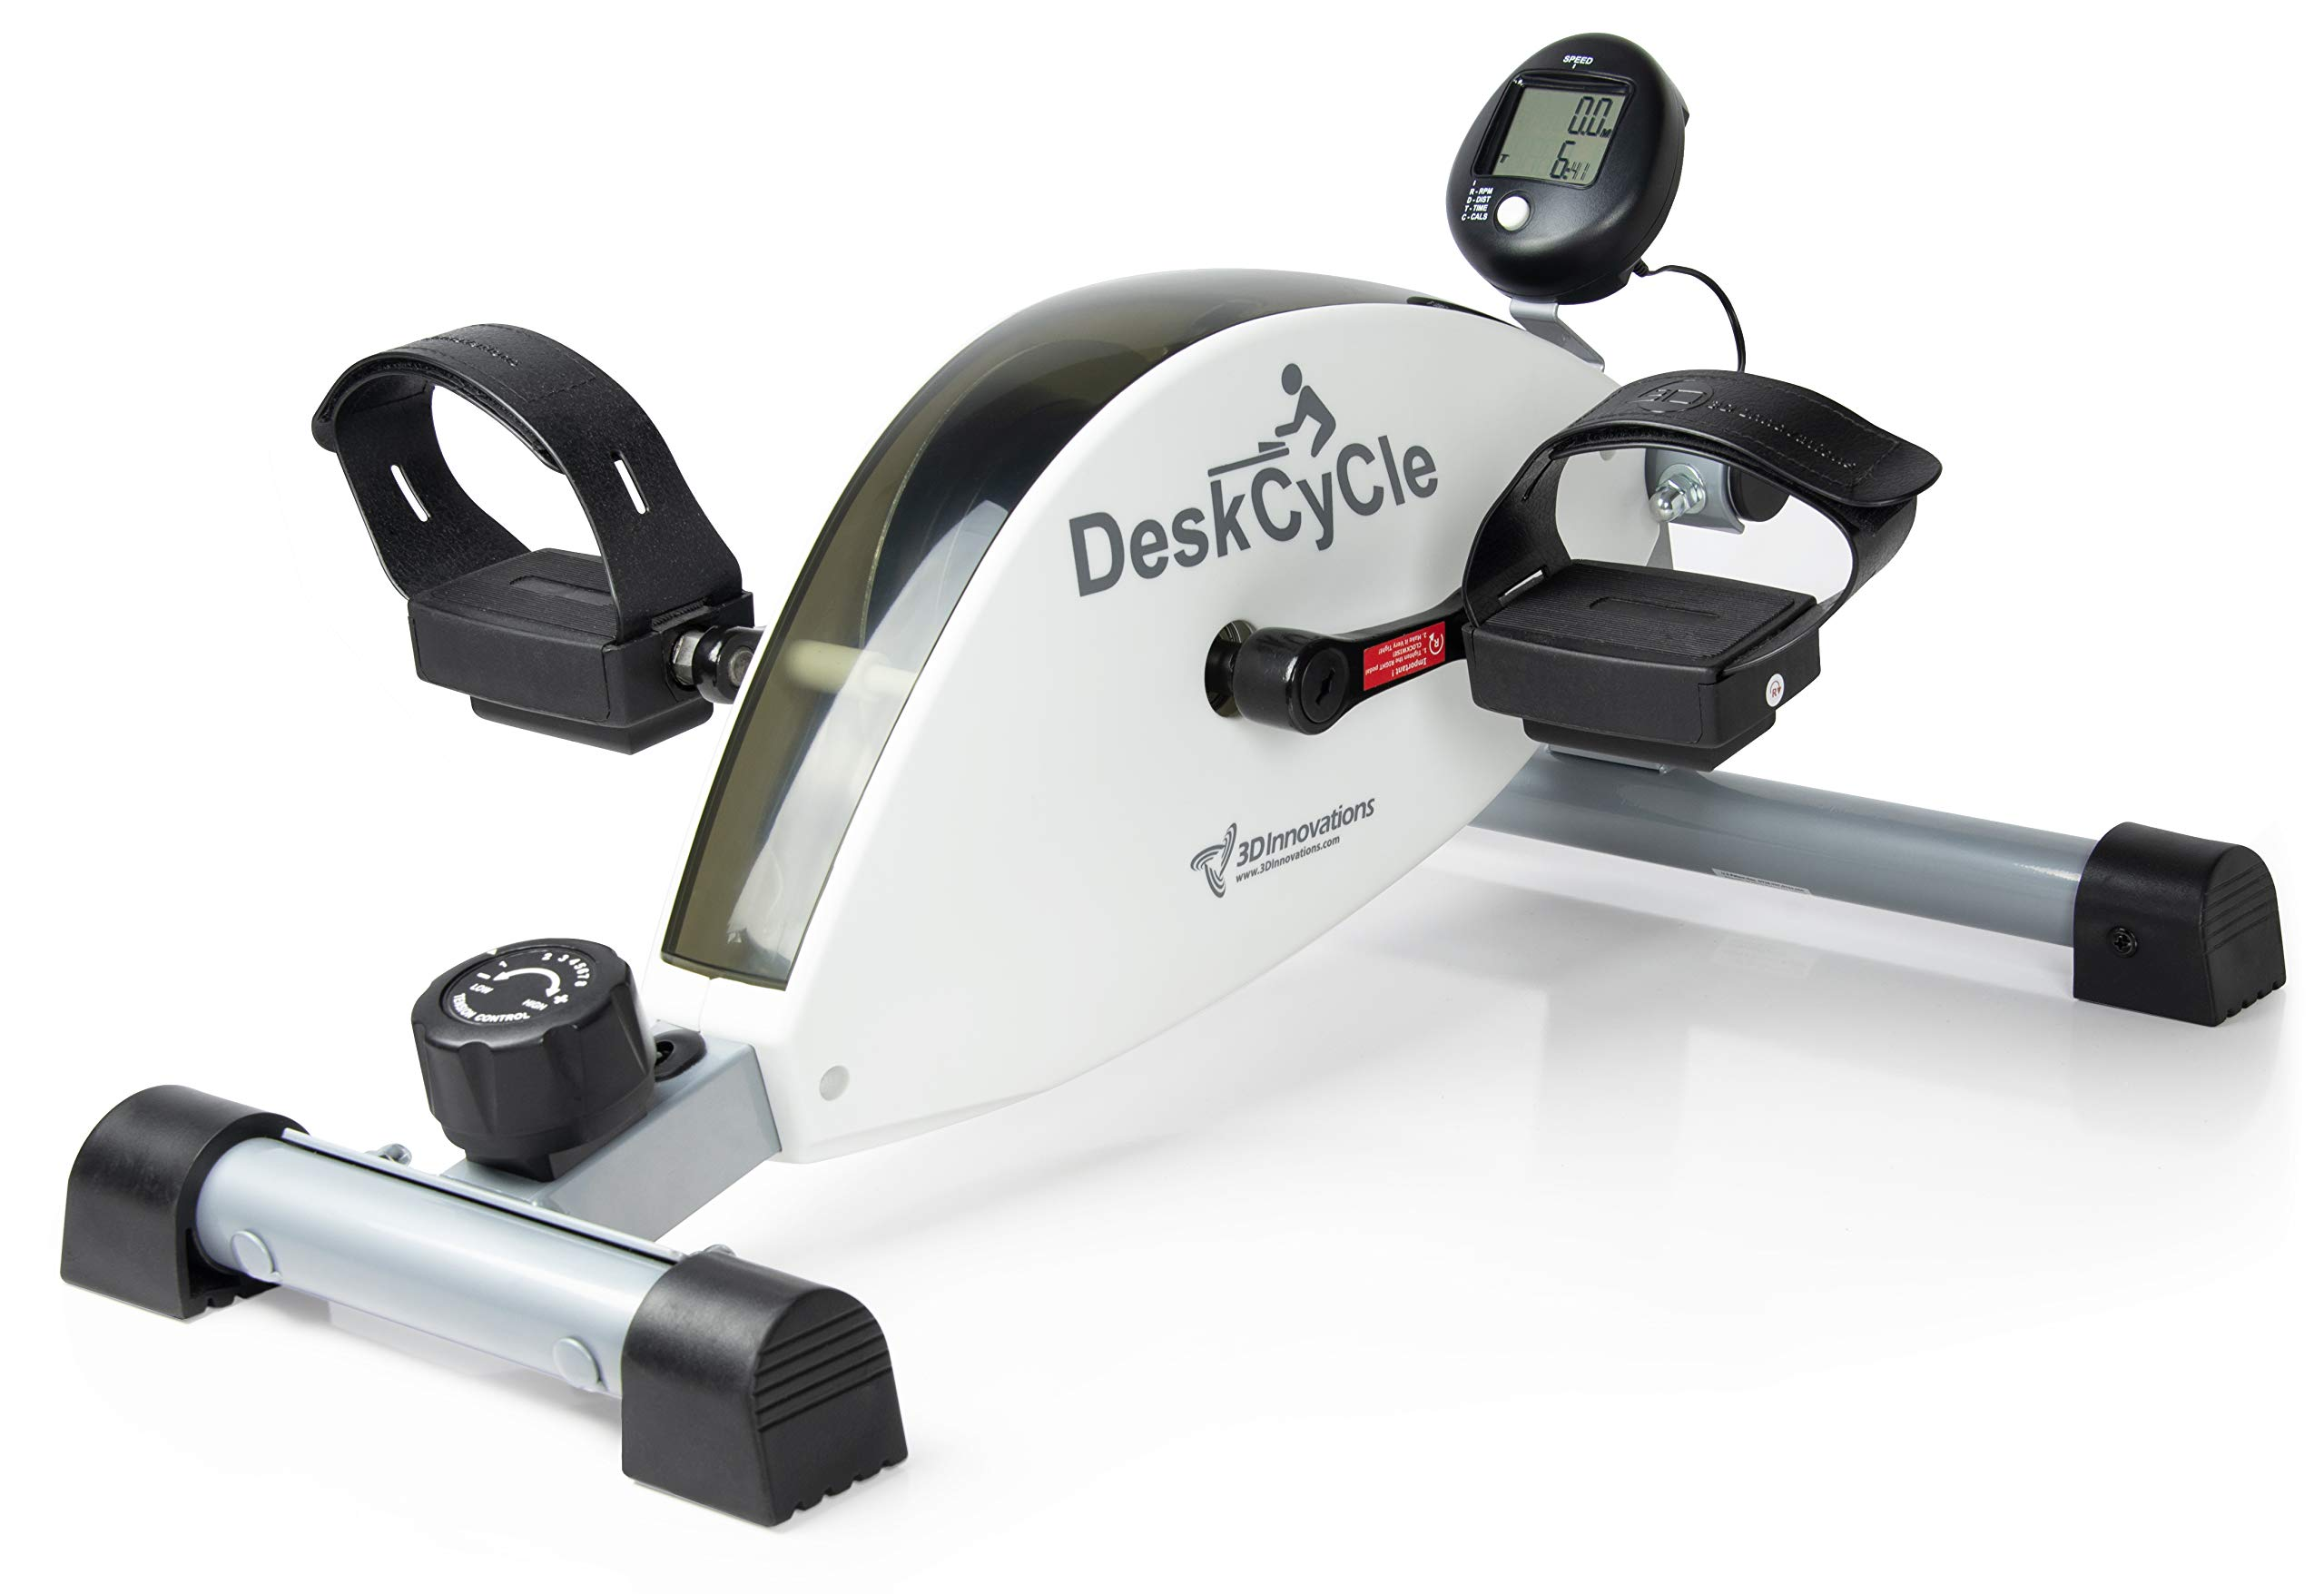 DeskCycle Desk Exercise Bike Pedal Exerciser, White by DeskCycle